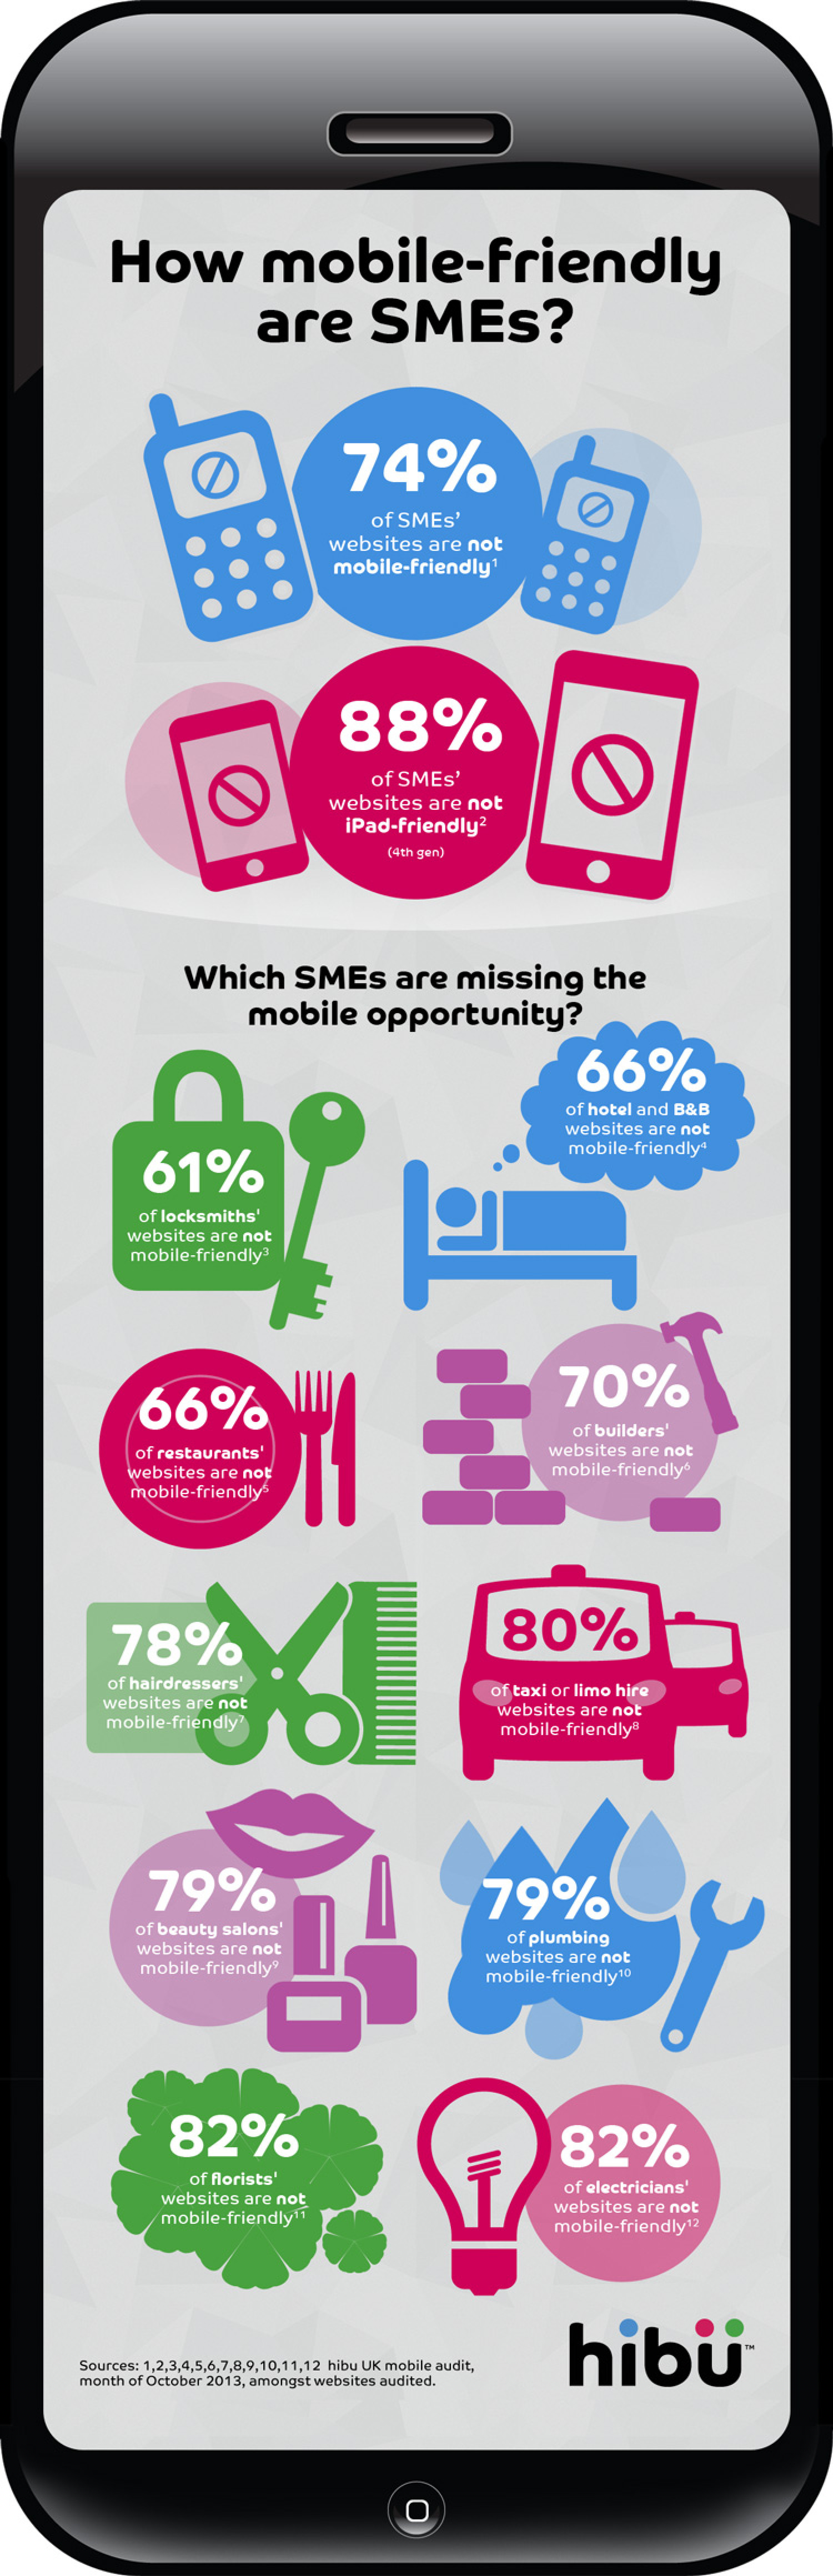 How mobile-friendly are local businesses? Infographic